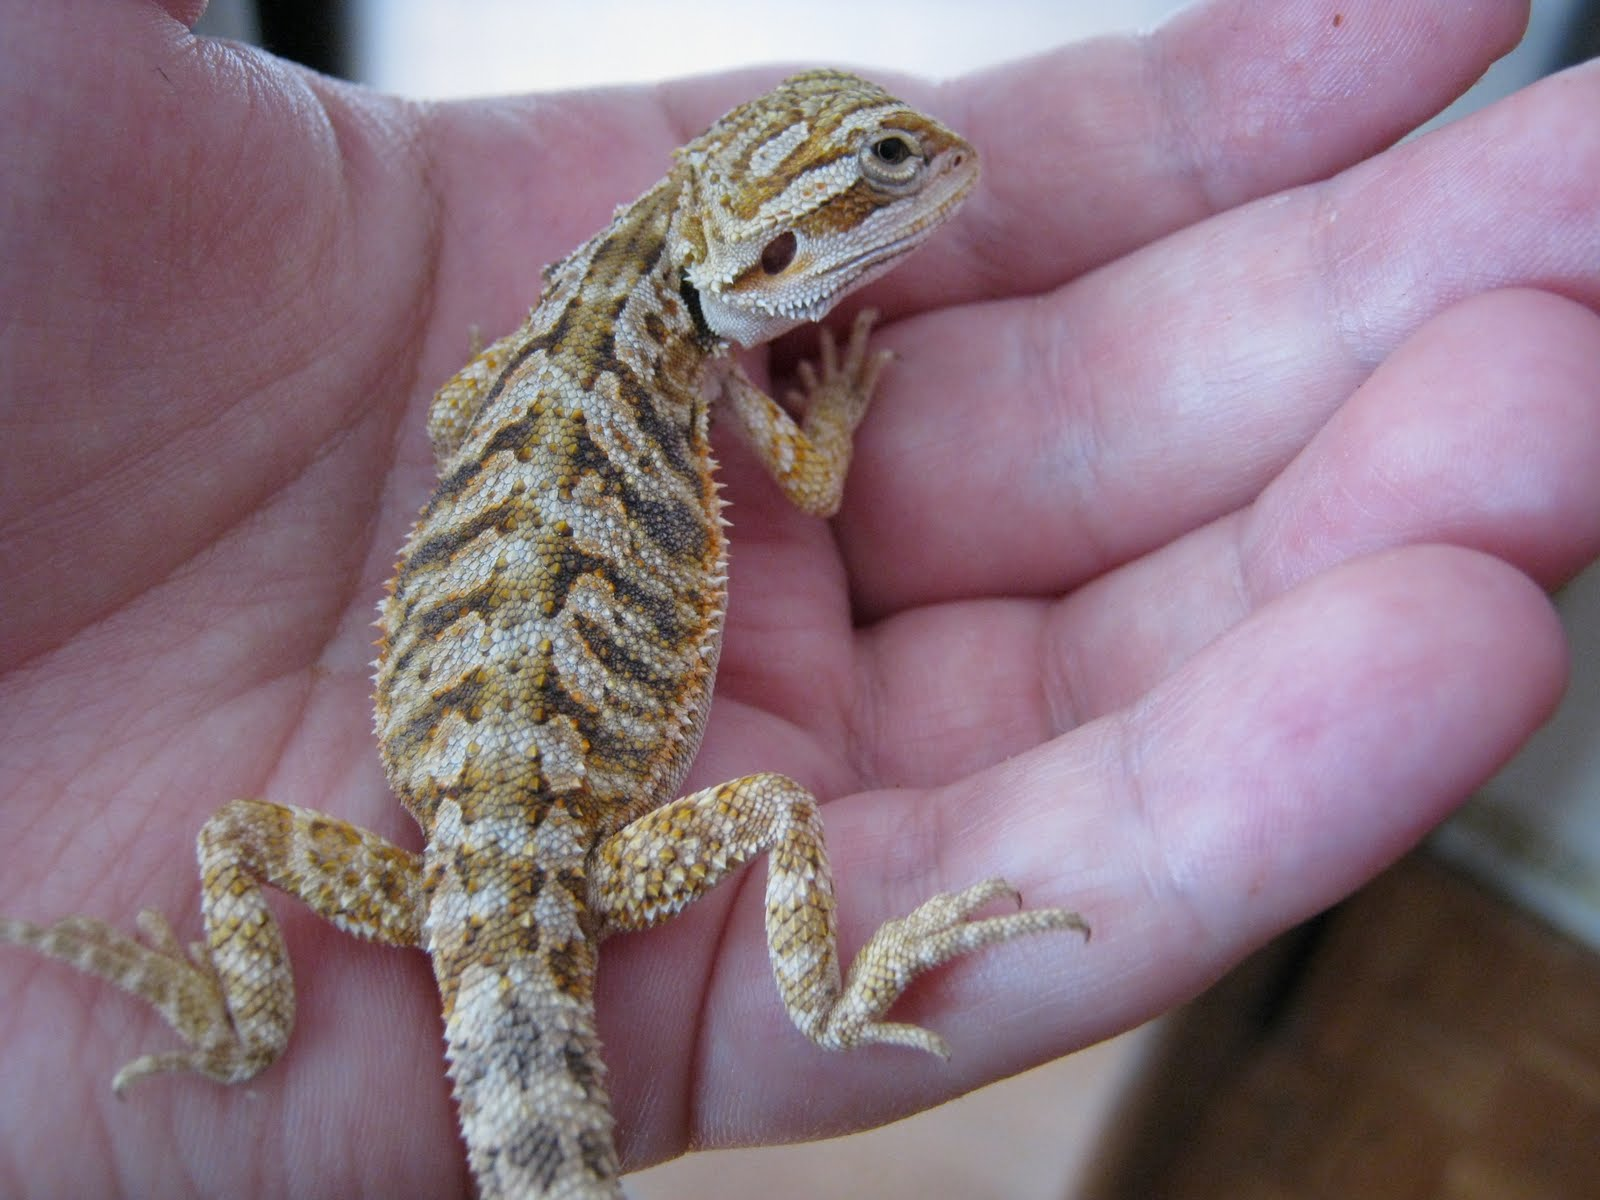 how to tell how old a bearded dragon is